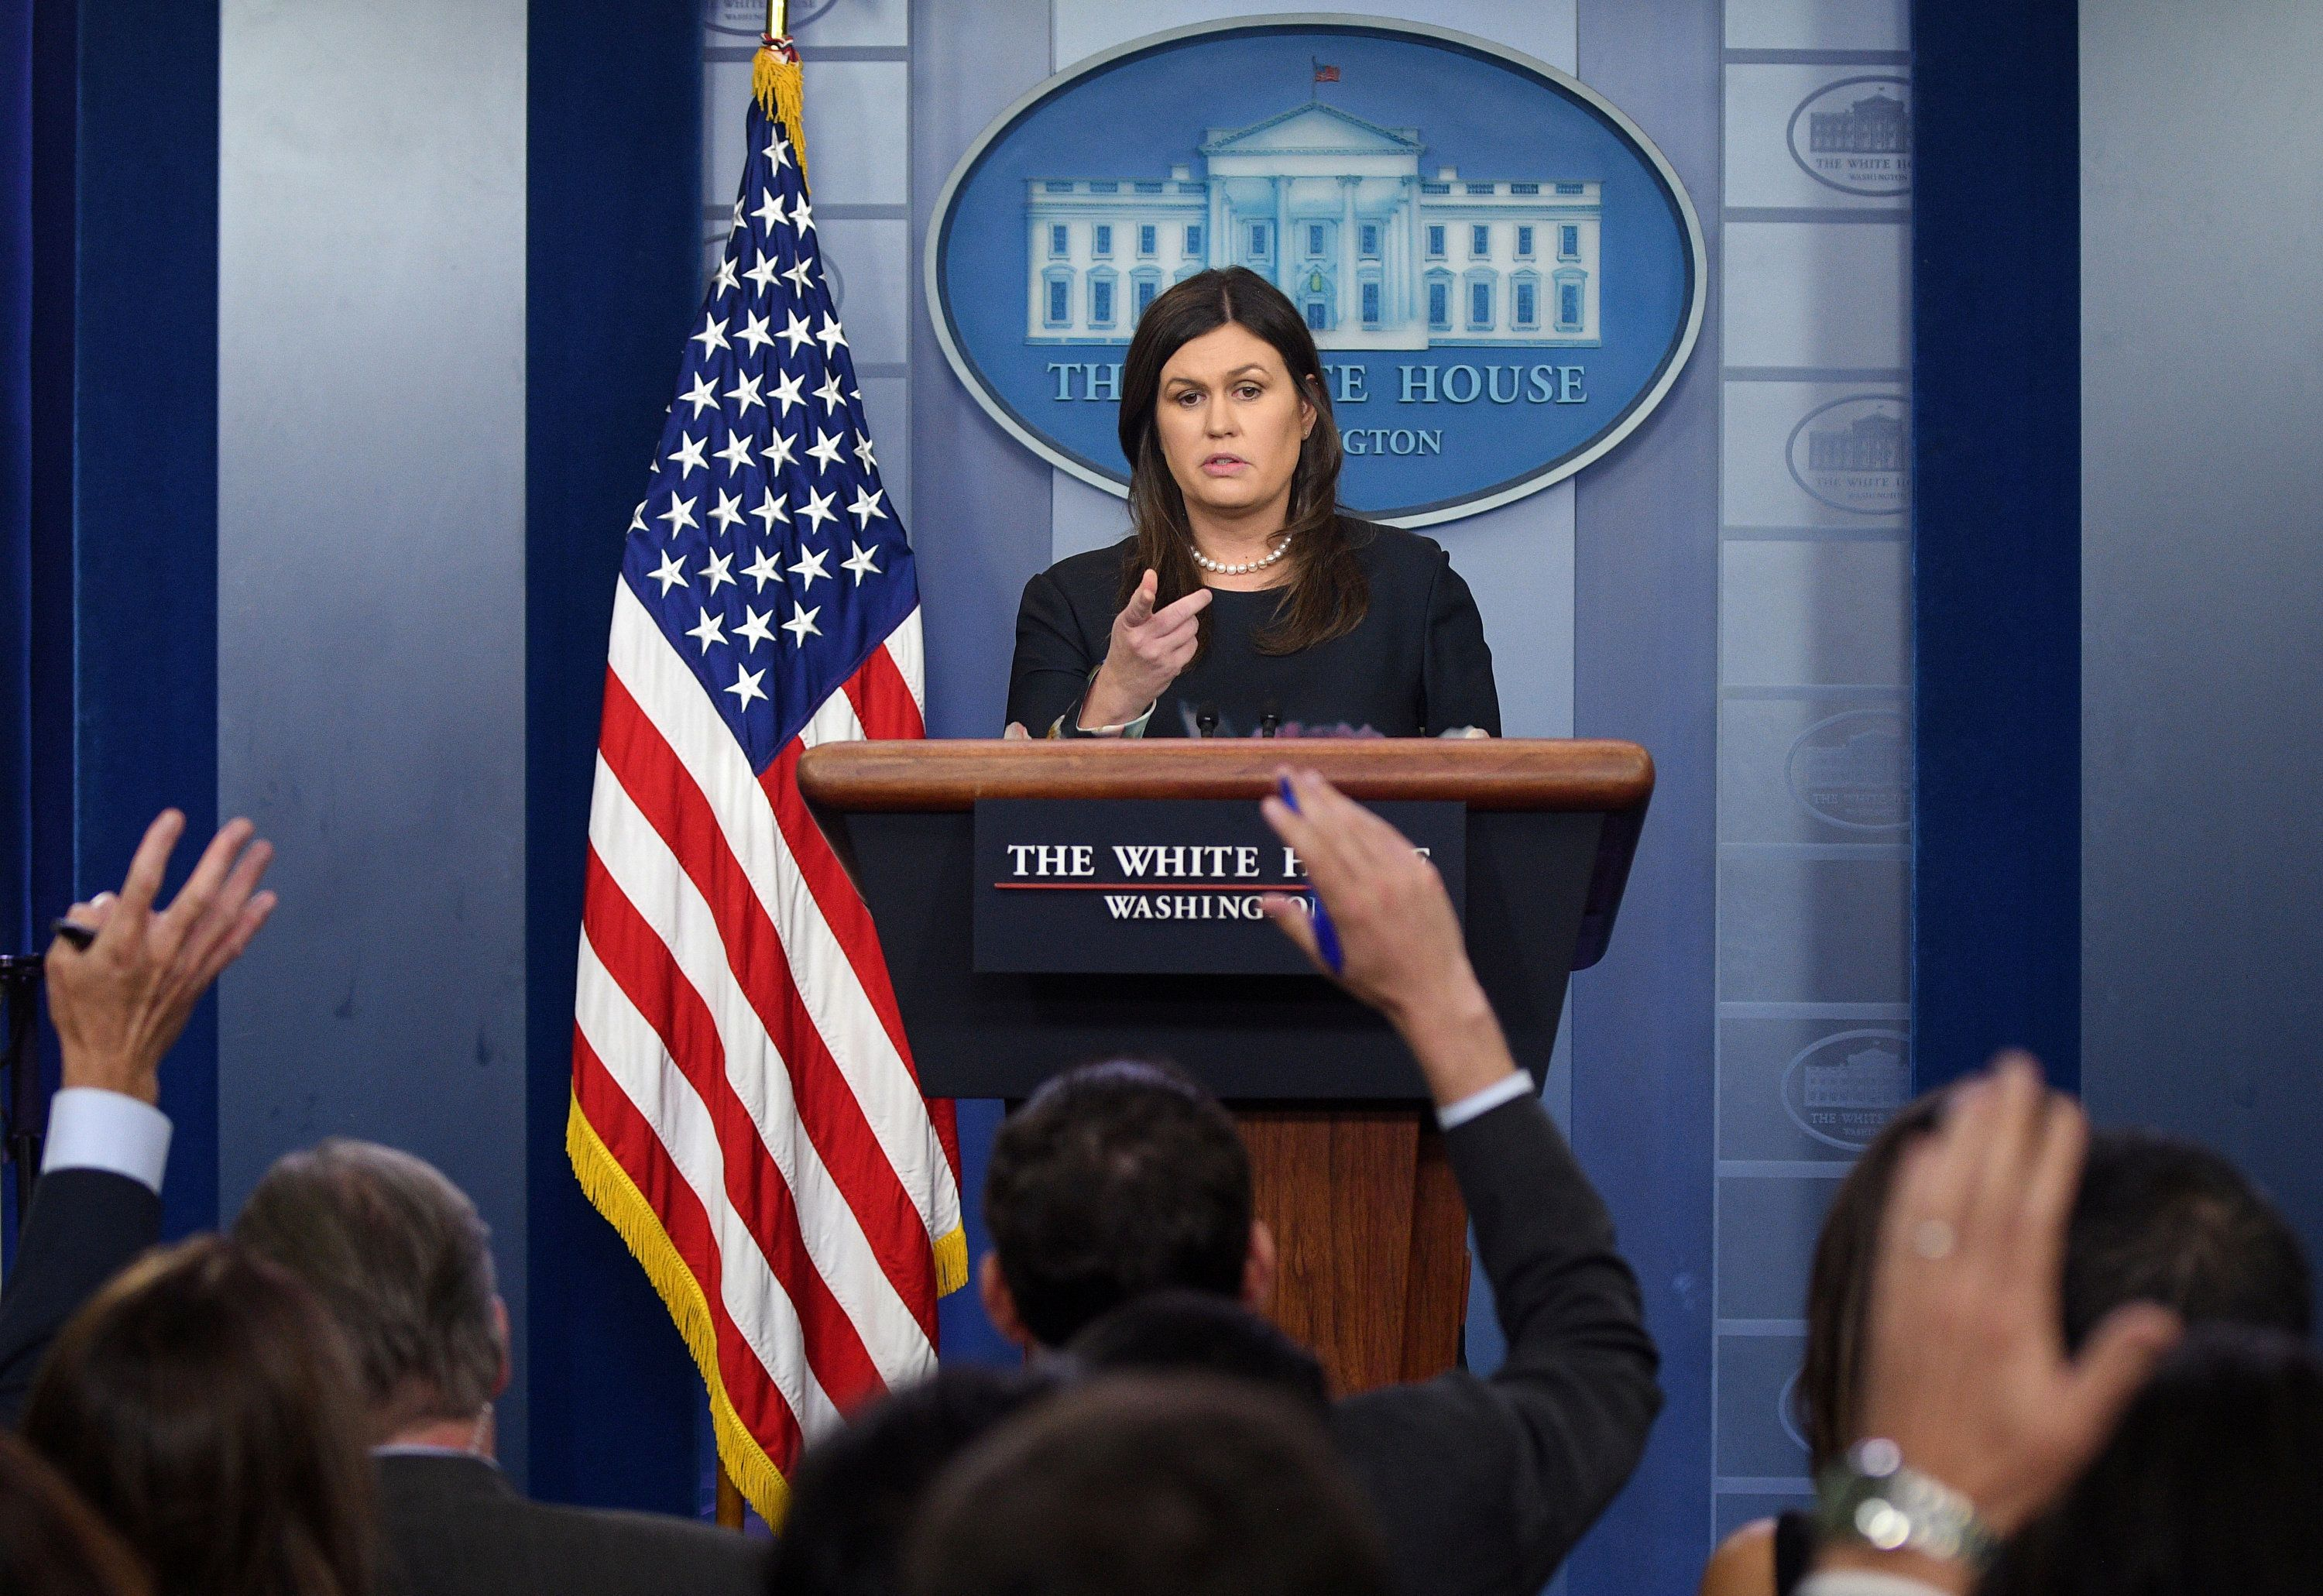 White House Press Secretary Sarah Sanders speaks during a press briefing at the White House in Washington, U.S., August 1, 2018. REUTERS/Mary F. Calvert